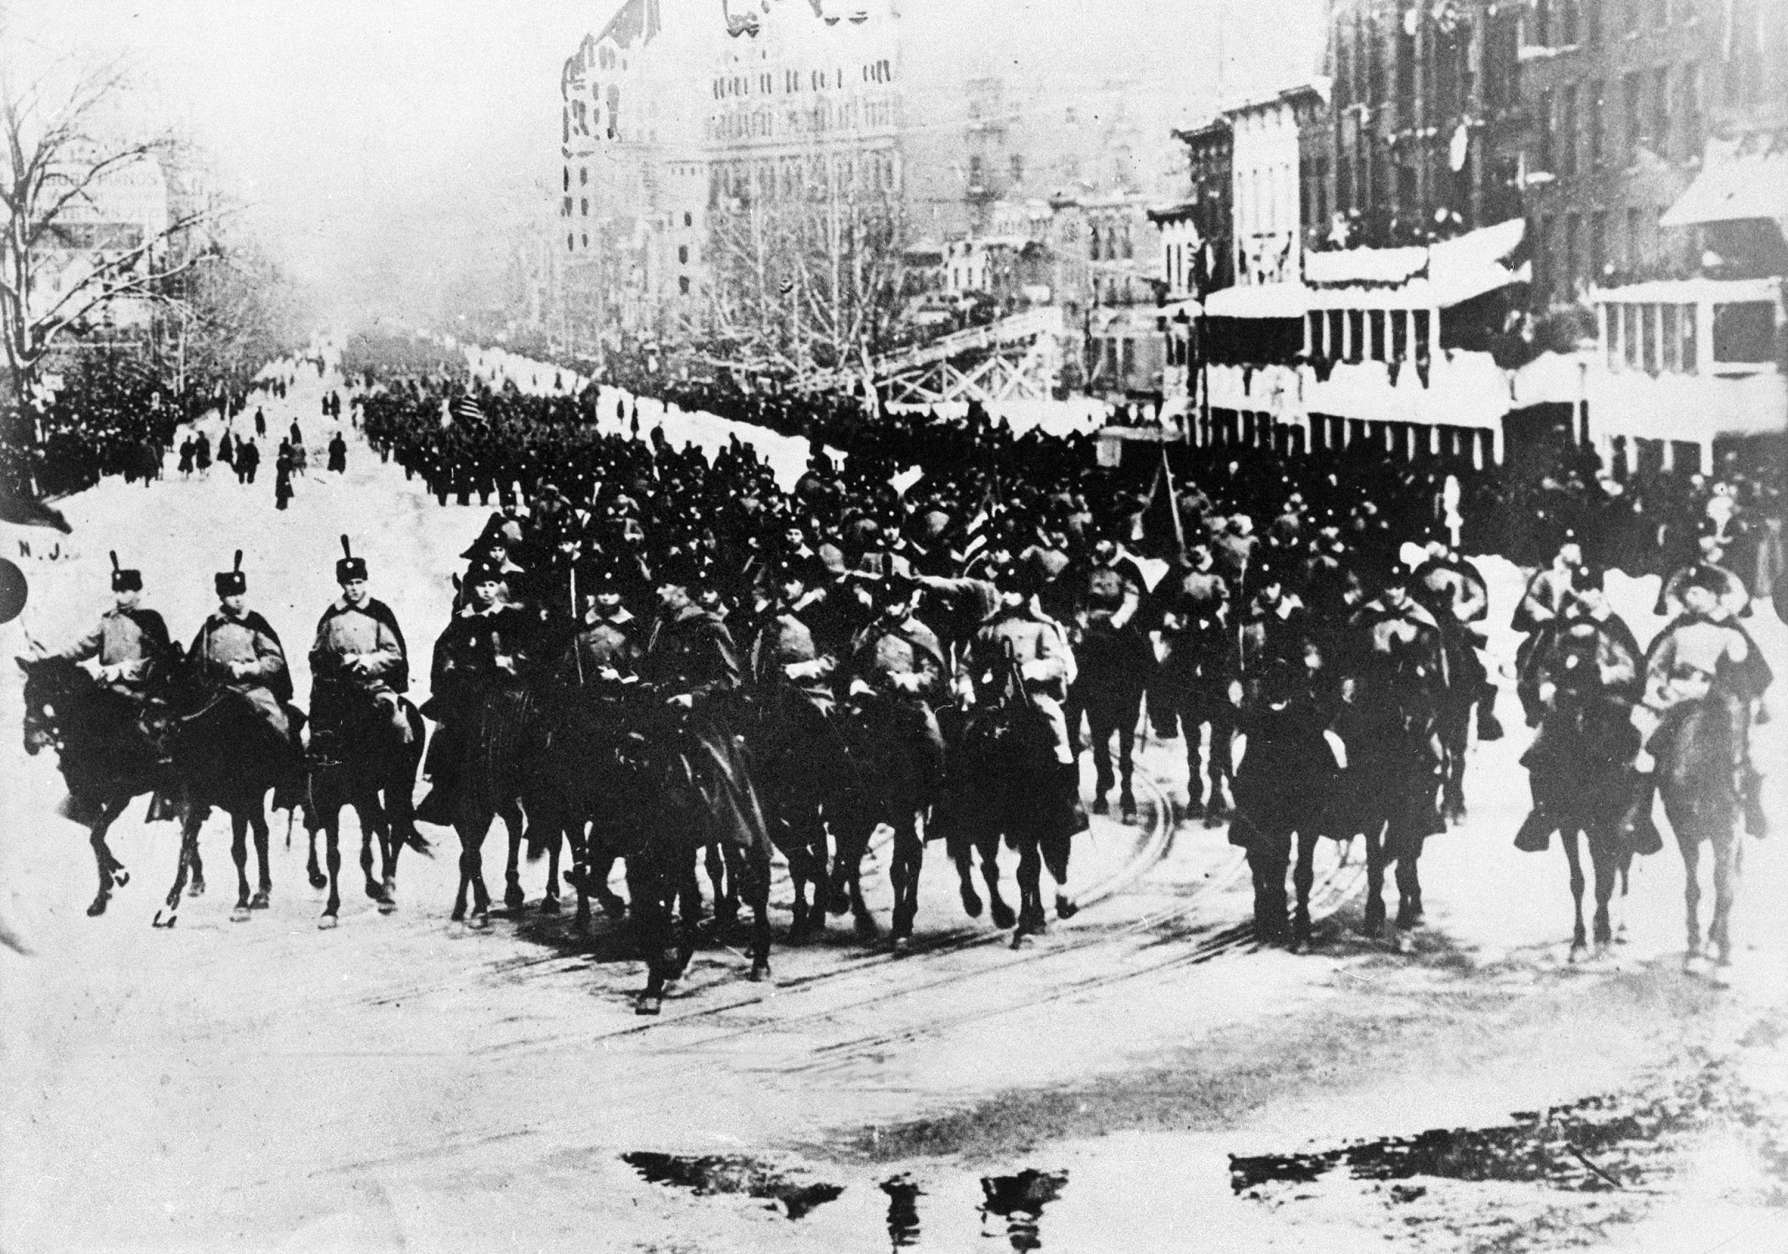 The inaugural parade for U.S. President Woodrow Wilson takes place in Washington, D.C., on Jan. 20, 1913.  (AP Photo)